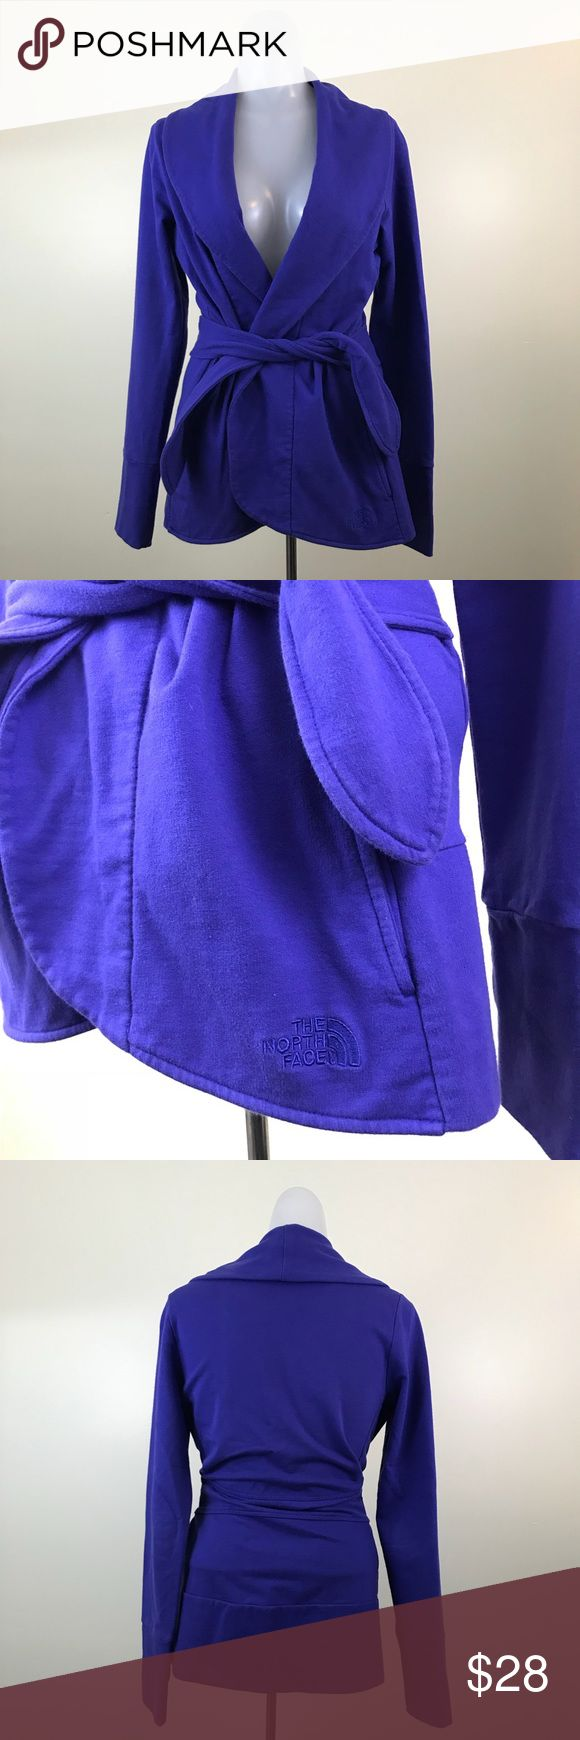 The North Face Tie Waist Cardigan • The North Face cardigan sweater • Ties around waist for a comfortable fit • Minor pilling but nothing too bad • Solid royal blue color • Long sleeves • Size S The North Face Sweaters Cardigans